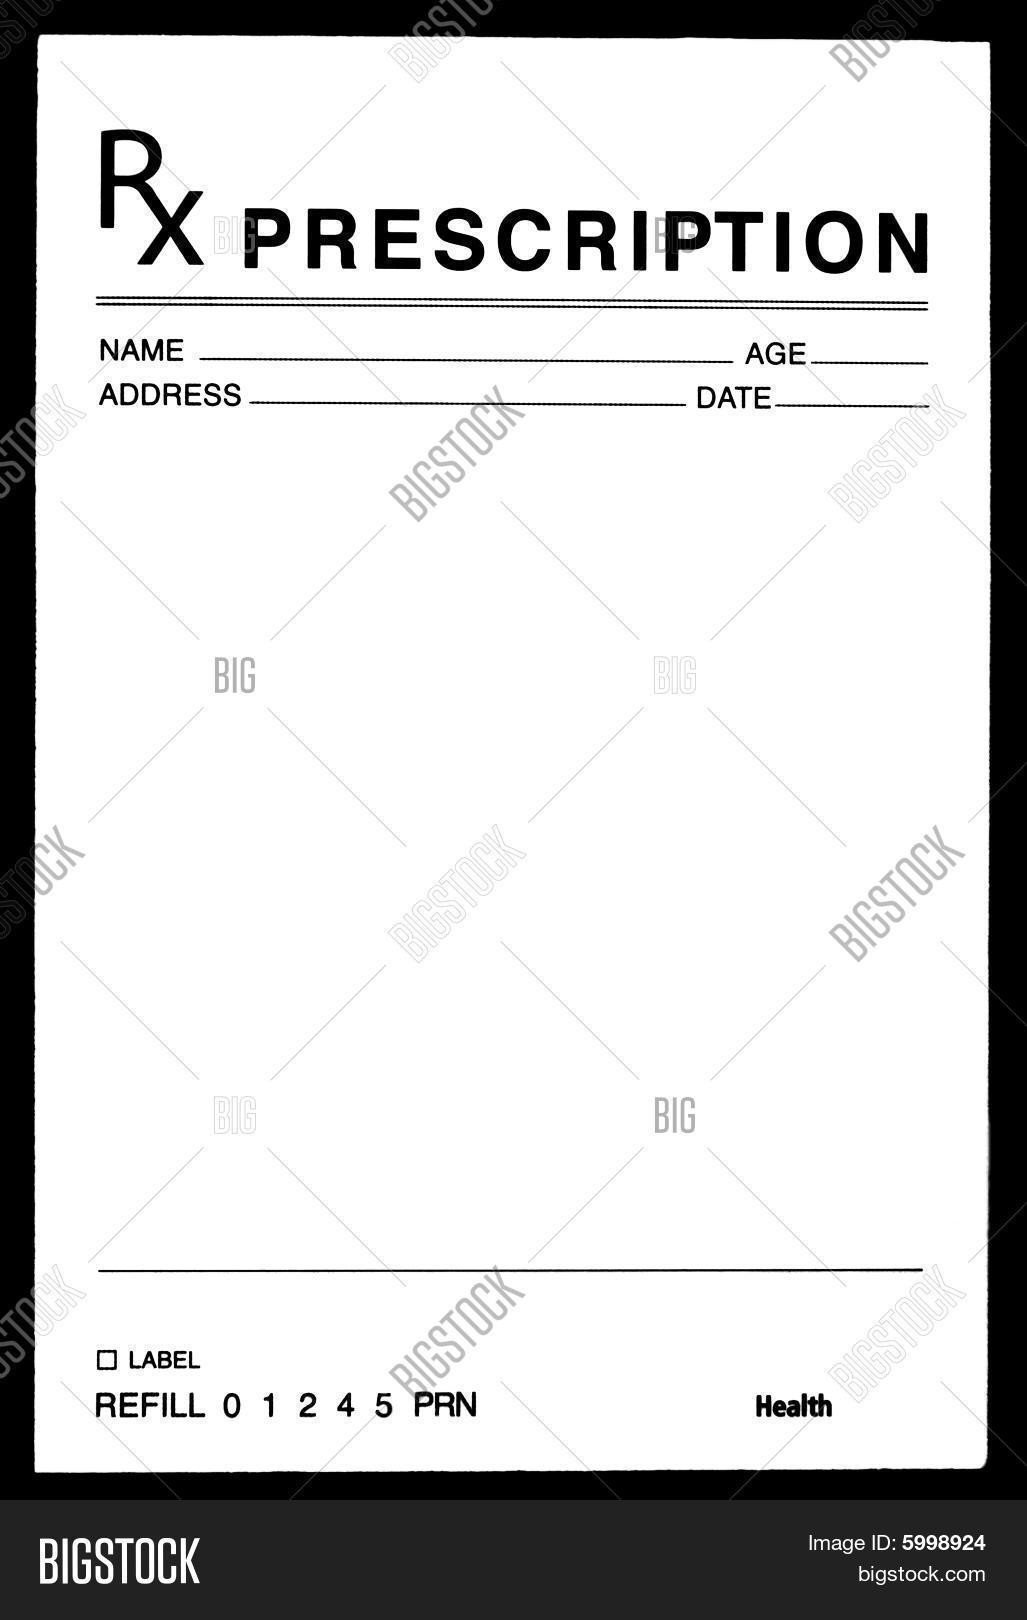 Prescription Pad Template Microsoft Word Blank Prescription form Image Cg5p C